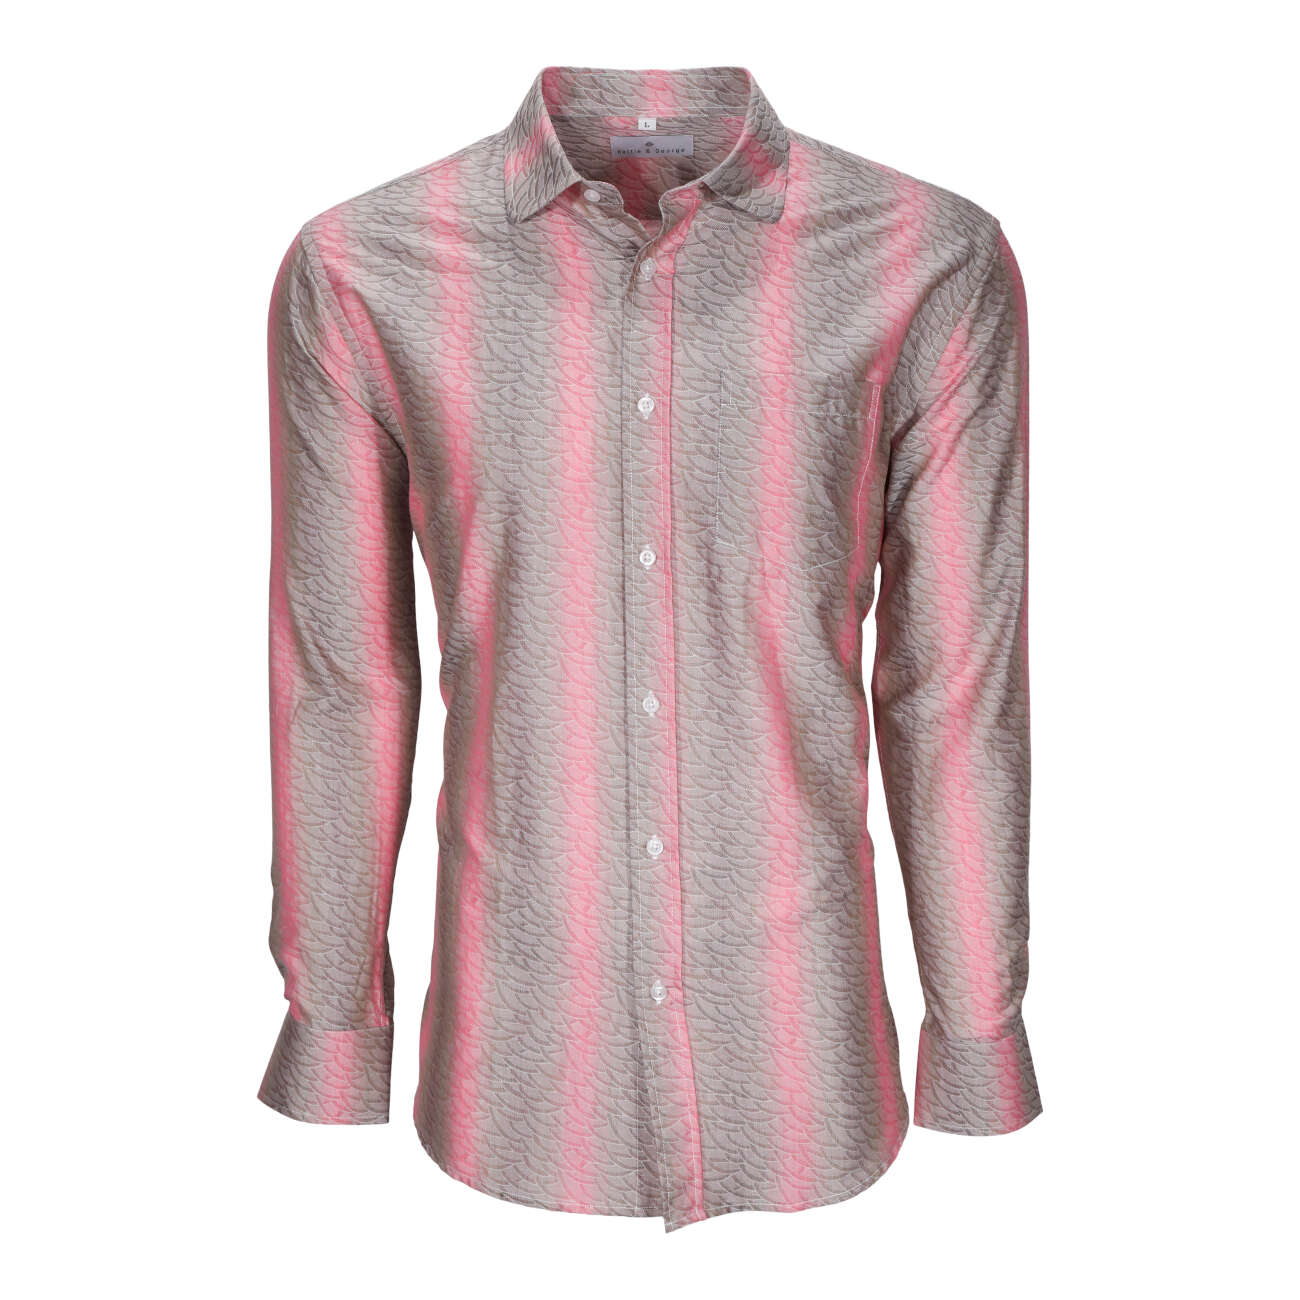 Coral men's long sleeve dress shirt.